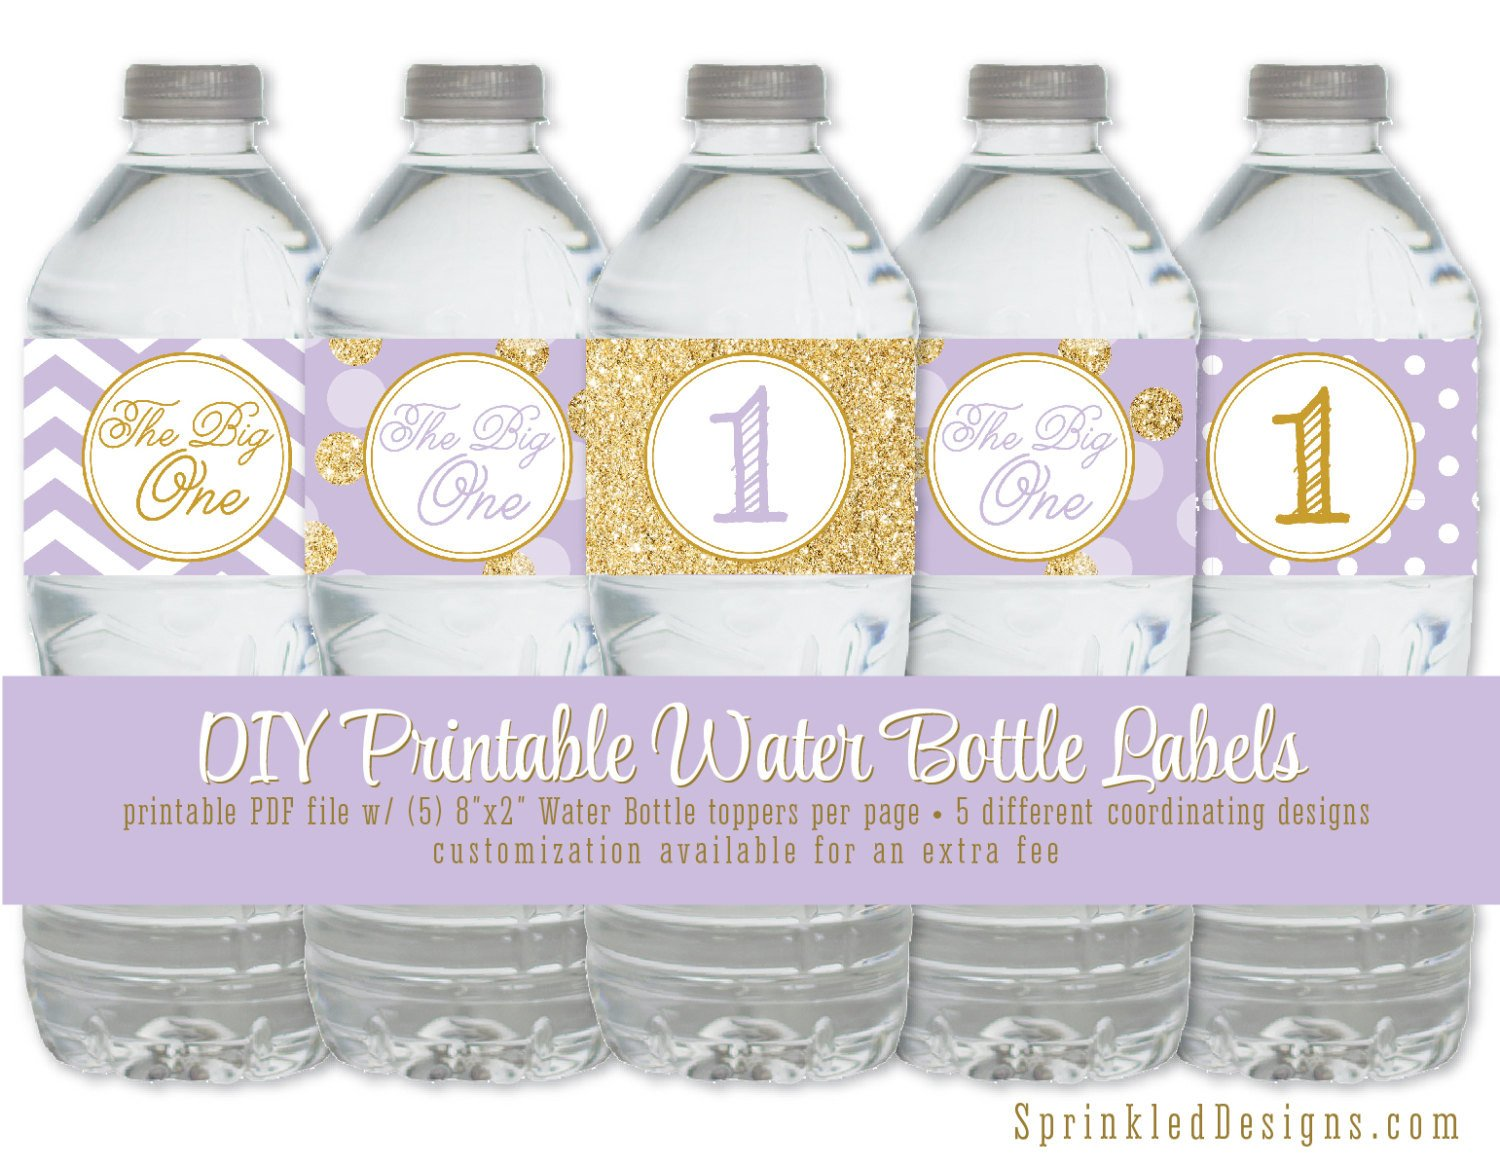 Printable Water Bottle Labels Printable Water Bottle Labels Drink Label Wrappers Wraps